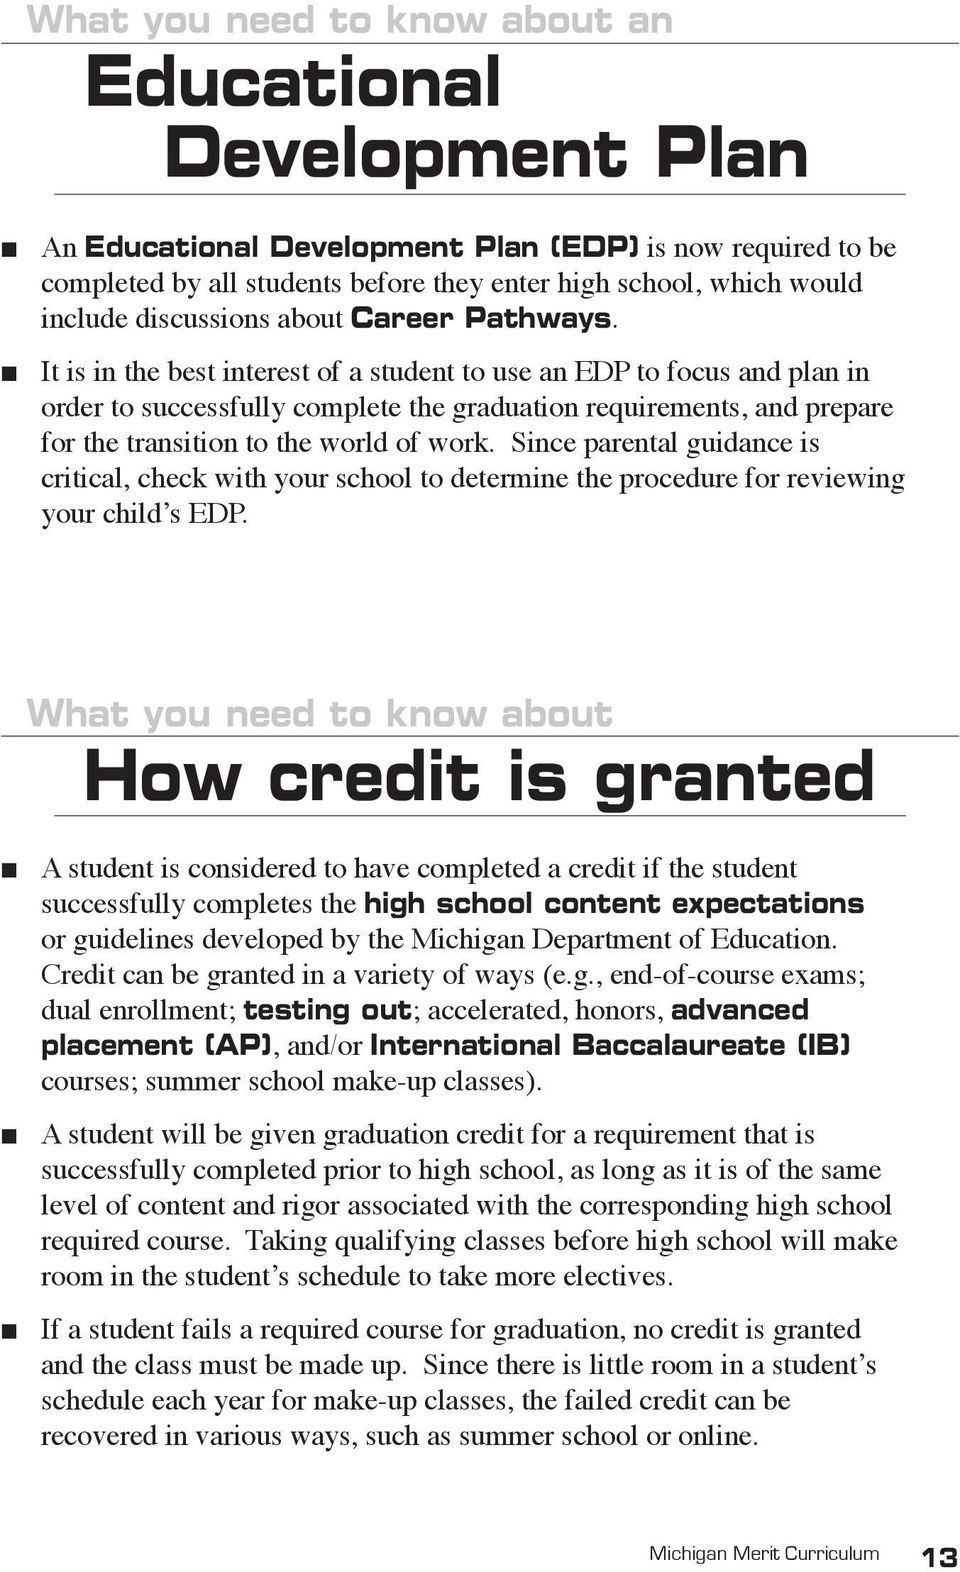 It is in the best interest of a student to use an EDP to focus and plan in order to successfully complete the graduation requirements, and prepare for the transition to the world of work.